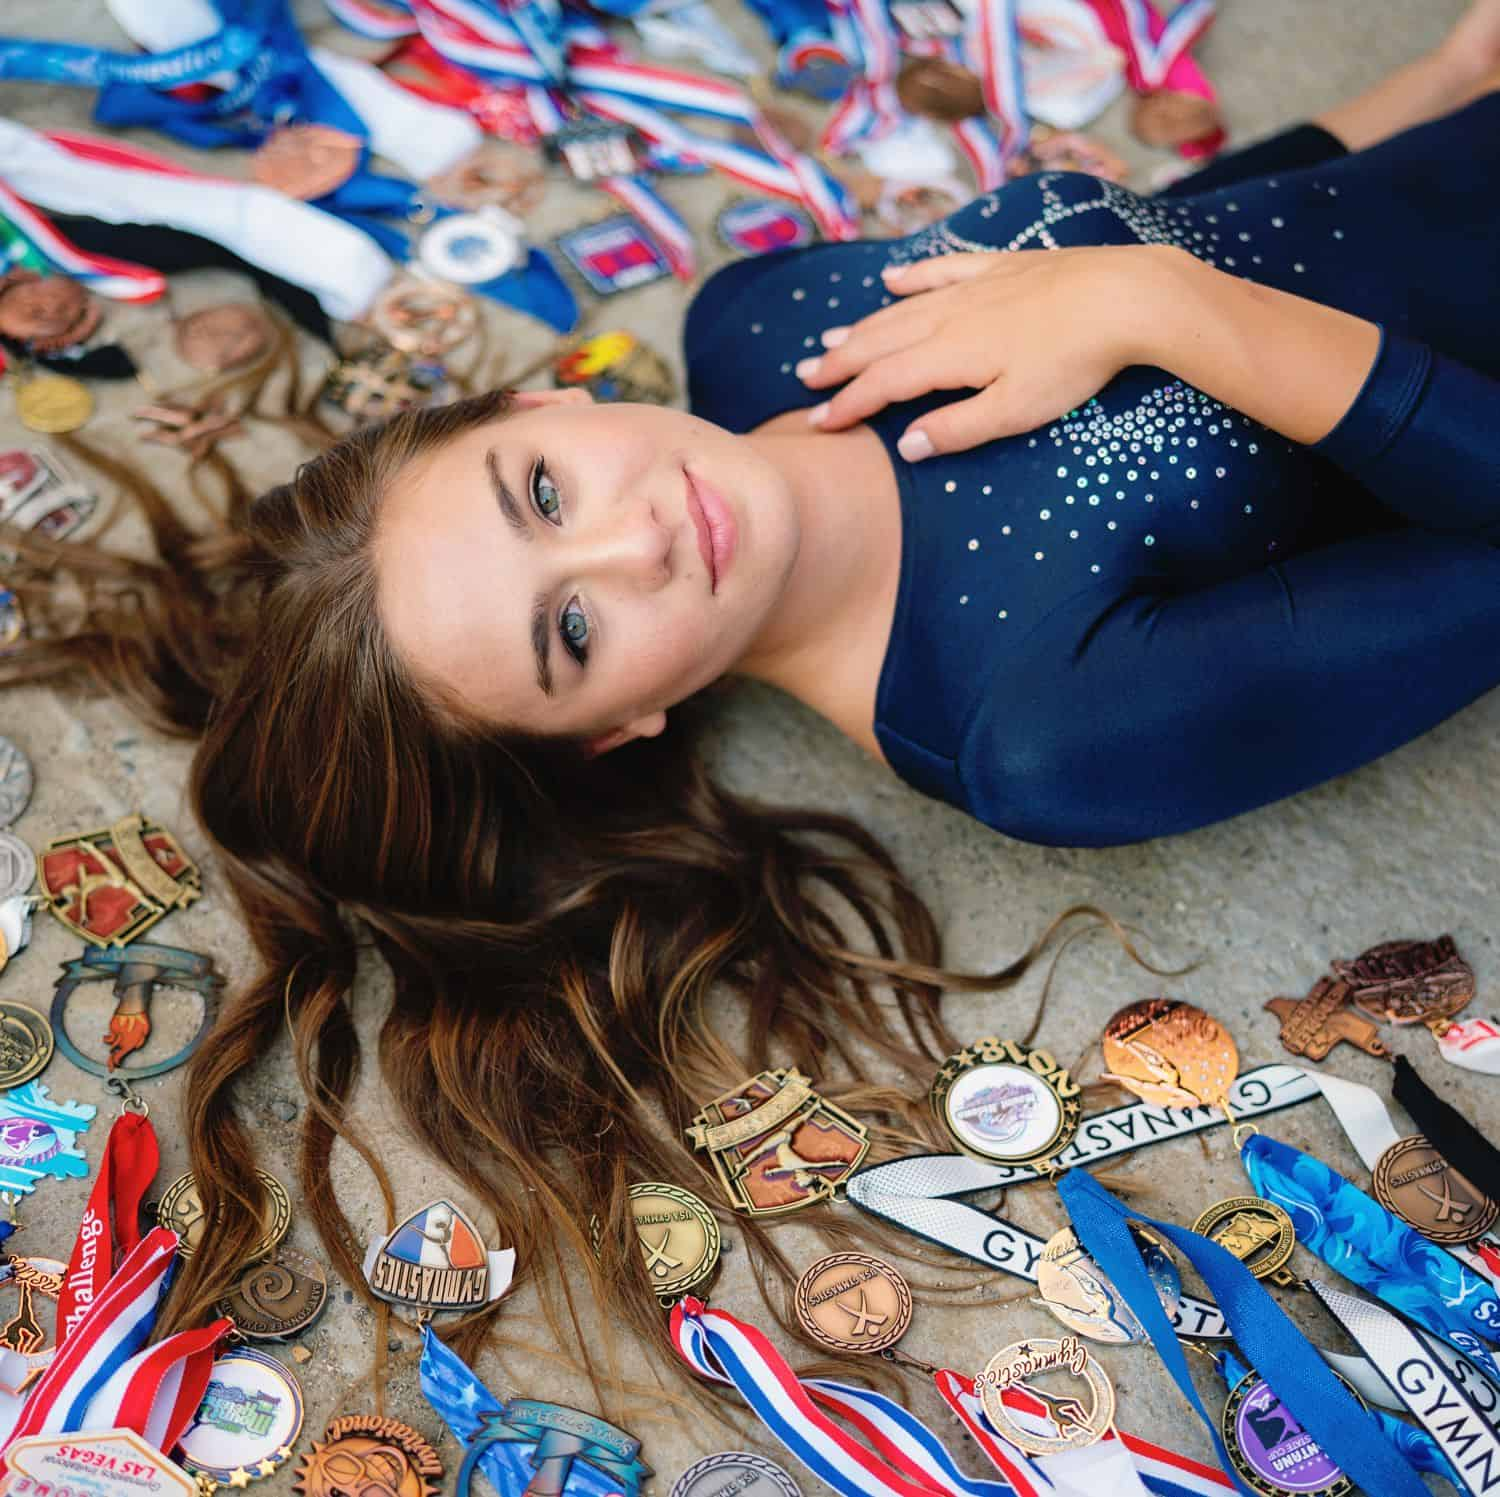 A senior girls lies on the ground surrounded by her medals and awards